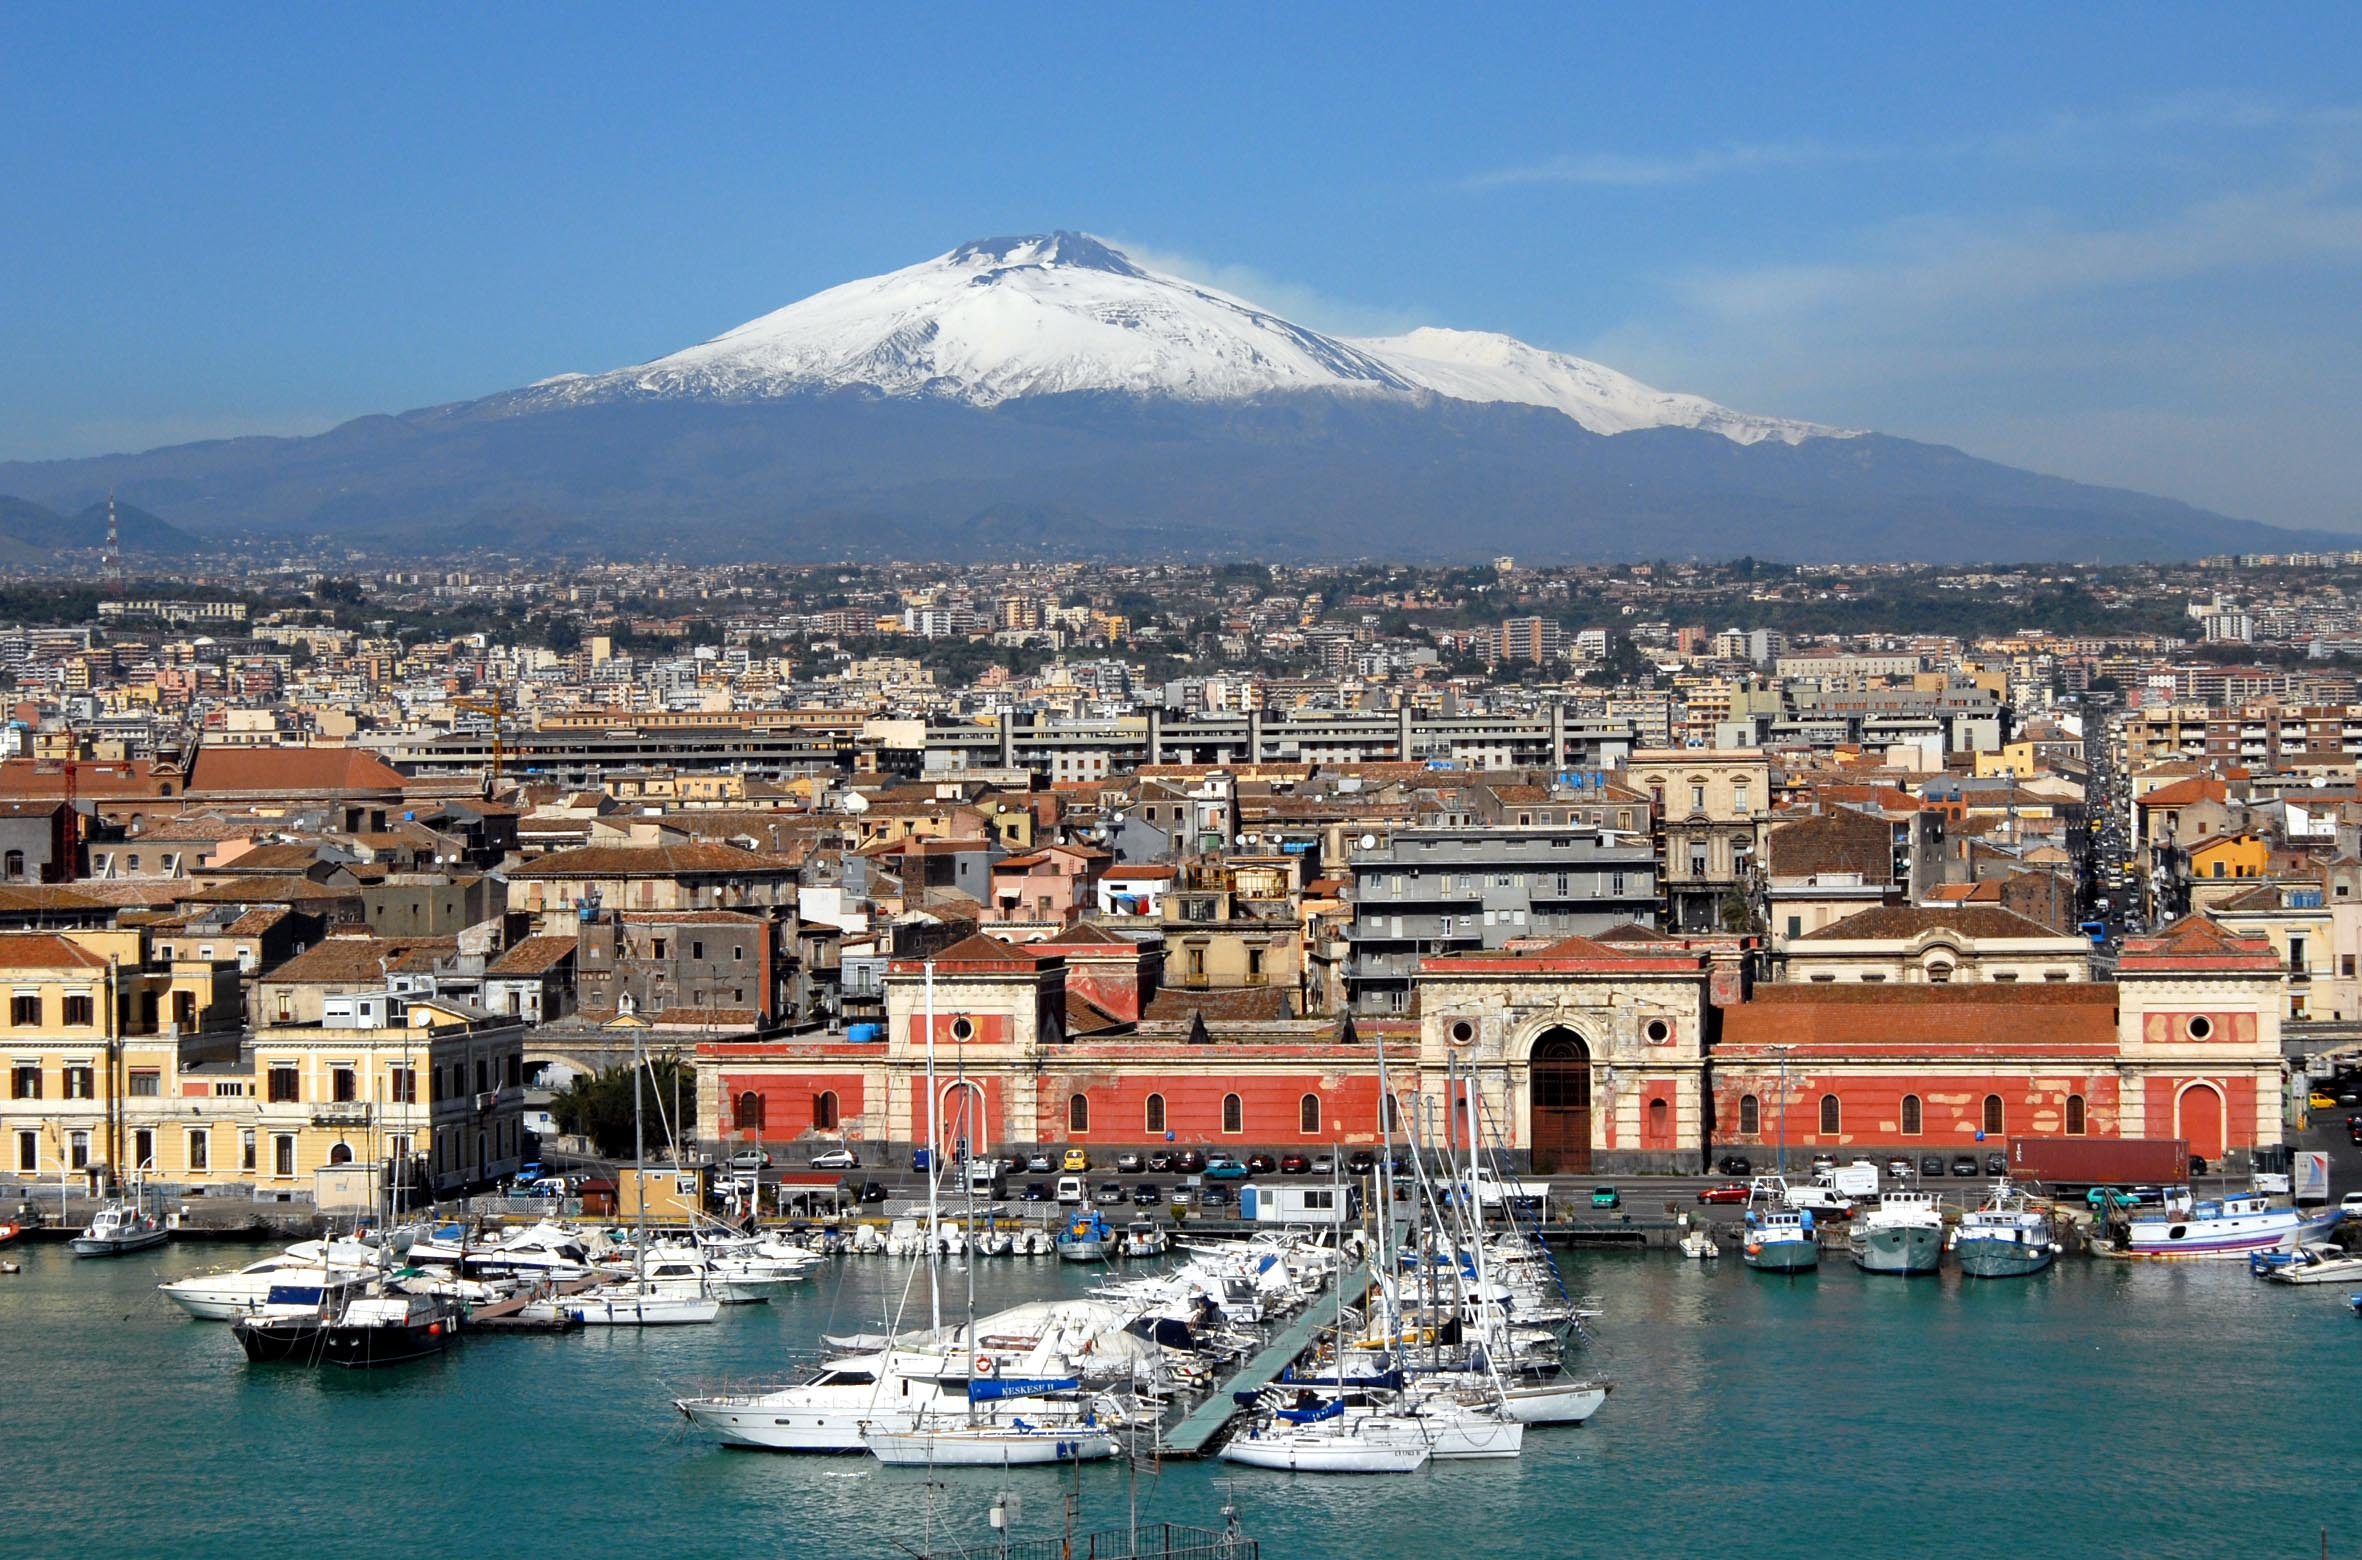 Catania, an ancient port city on Sicily's east coast, sits at the foot of Mt. Etna, an active volcano with trails leading up to the summit